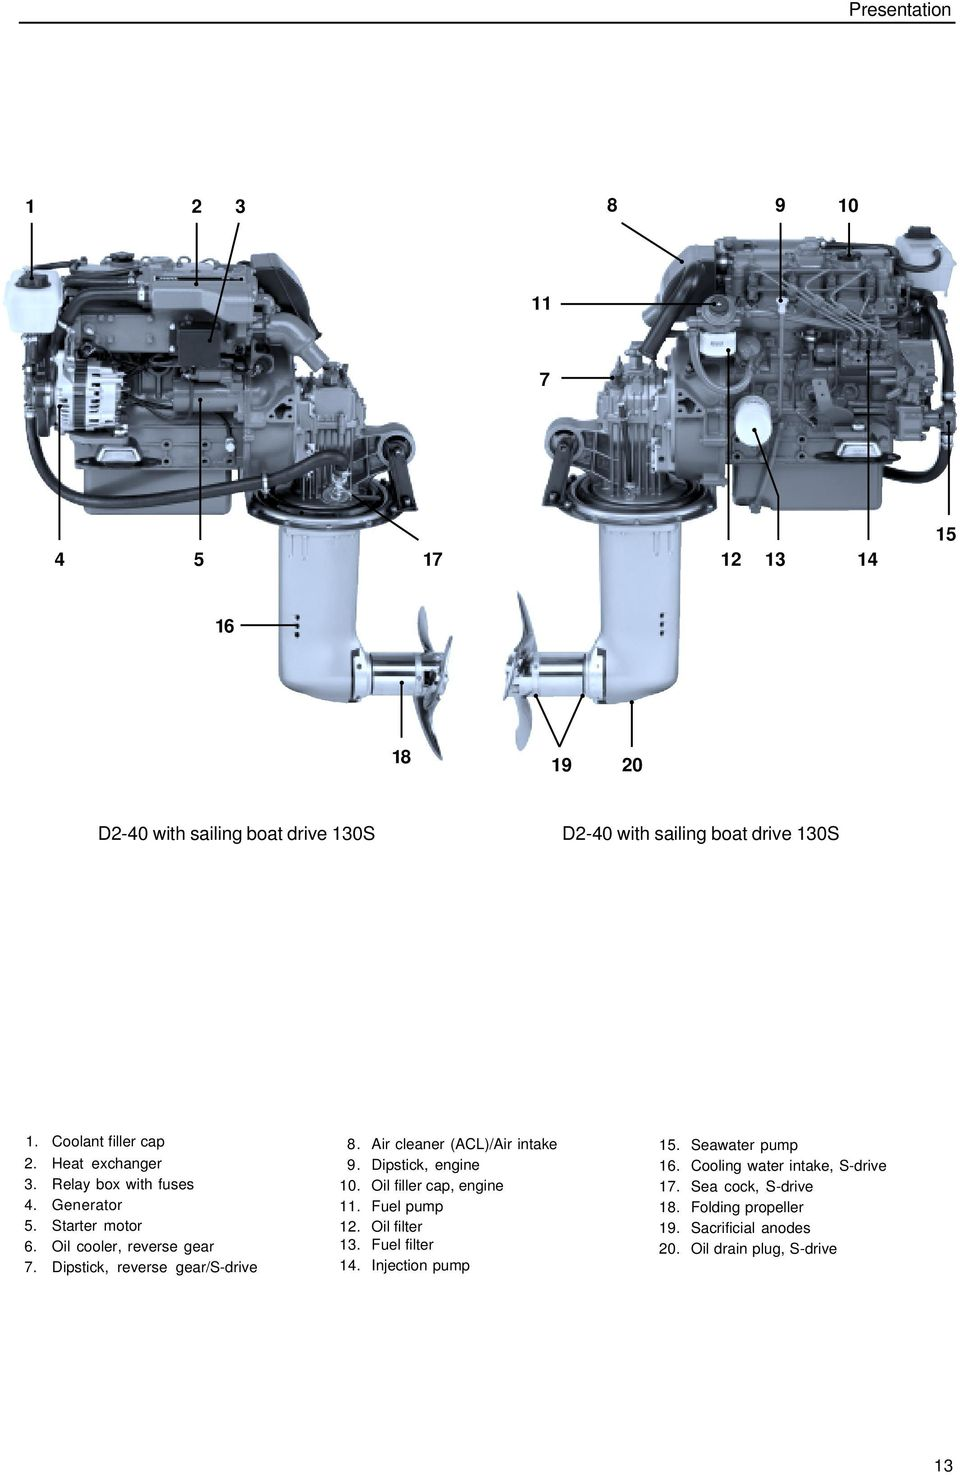 Operator S Manual D1 13 20 30 D Pdf 10 Fuel Filter Dipstick Reverse Gear Drive 8 Air Cleaner Acl